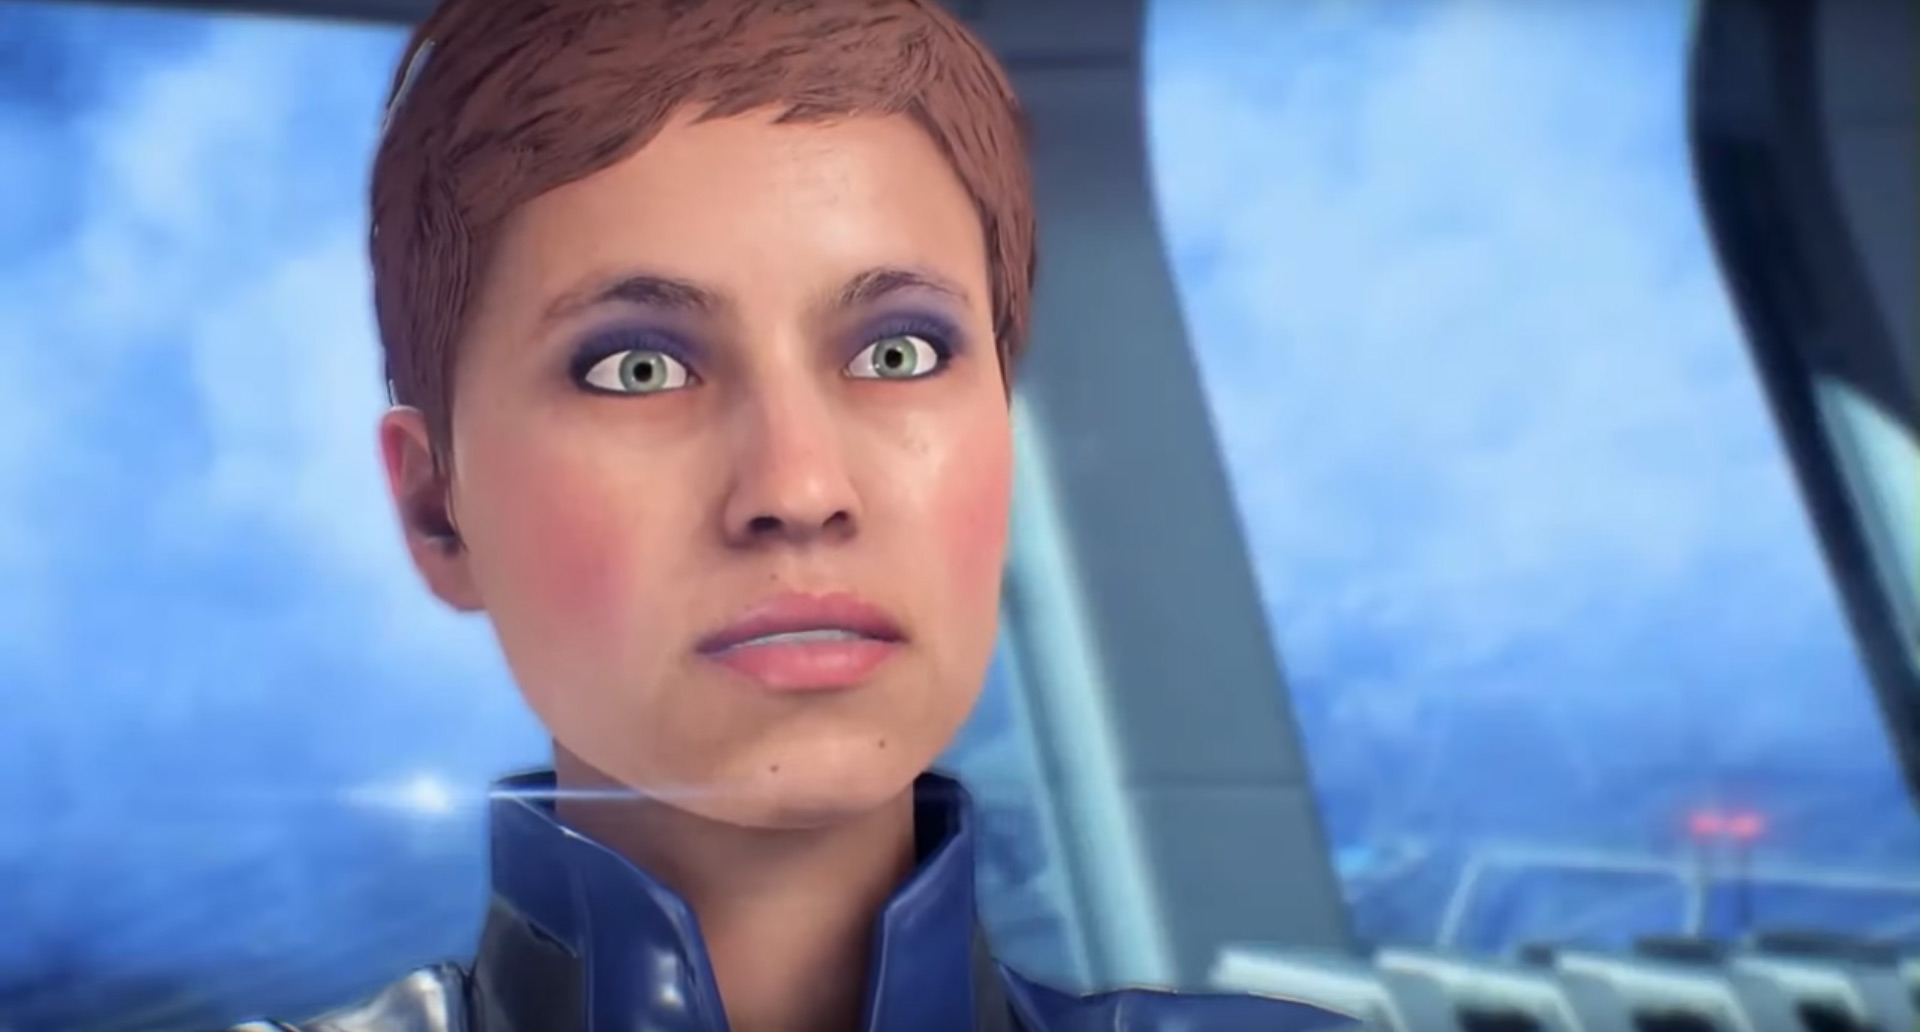 BioWare shelves sci-fi game, sequel in state of uncertainty